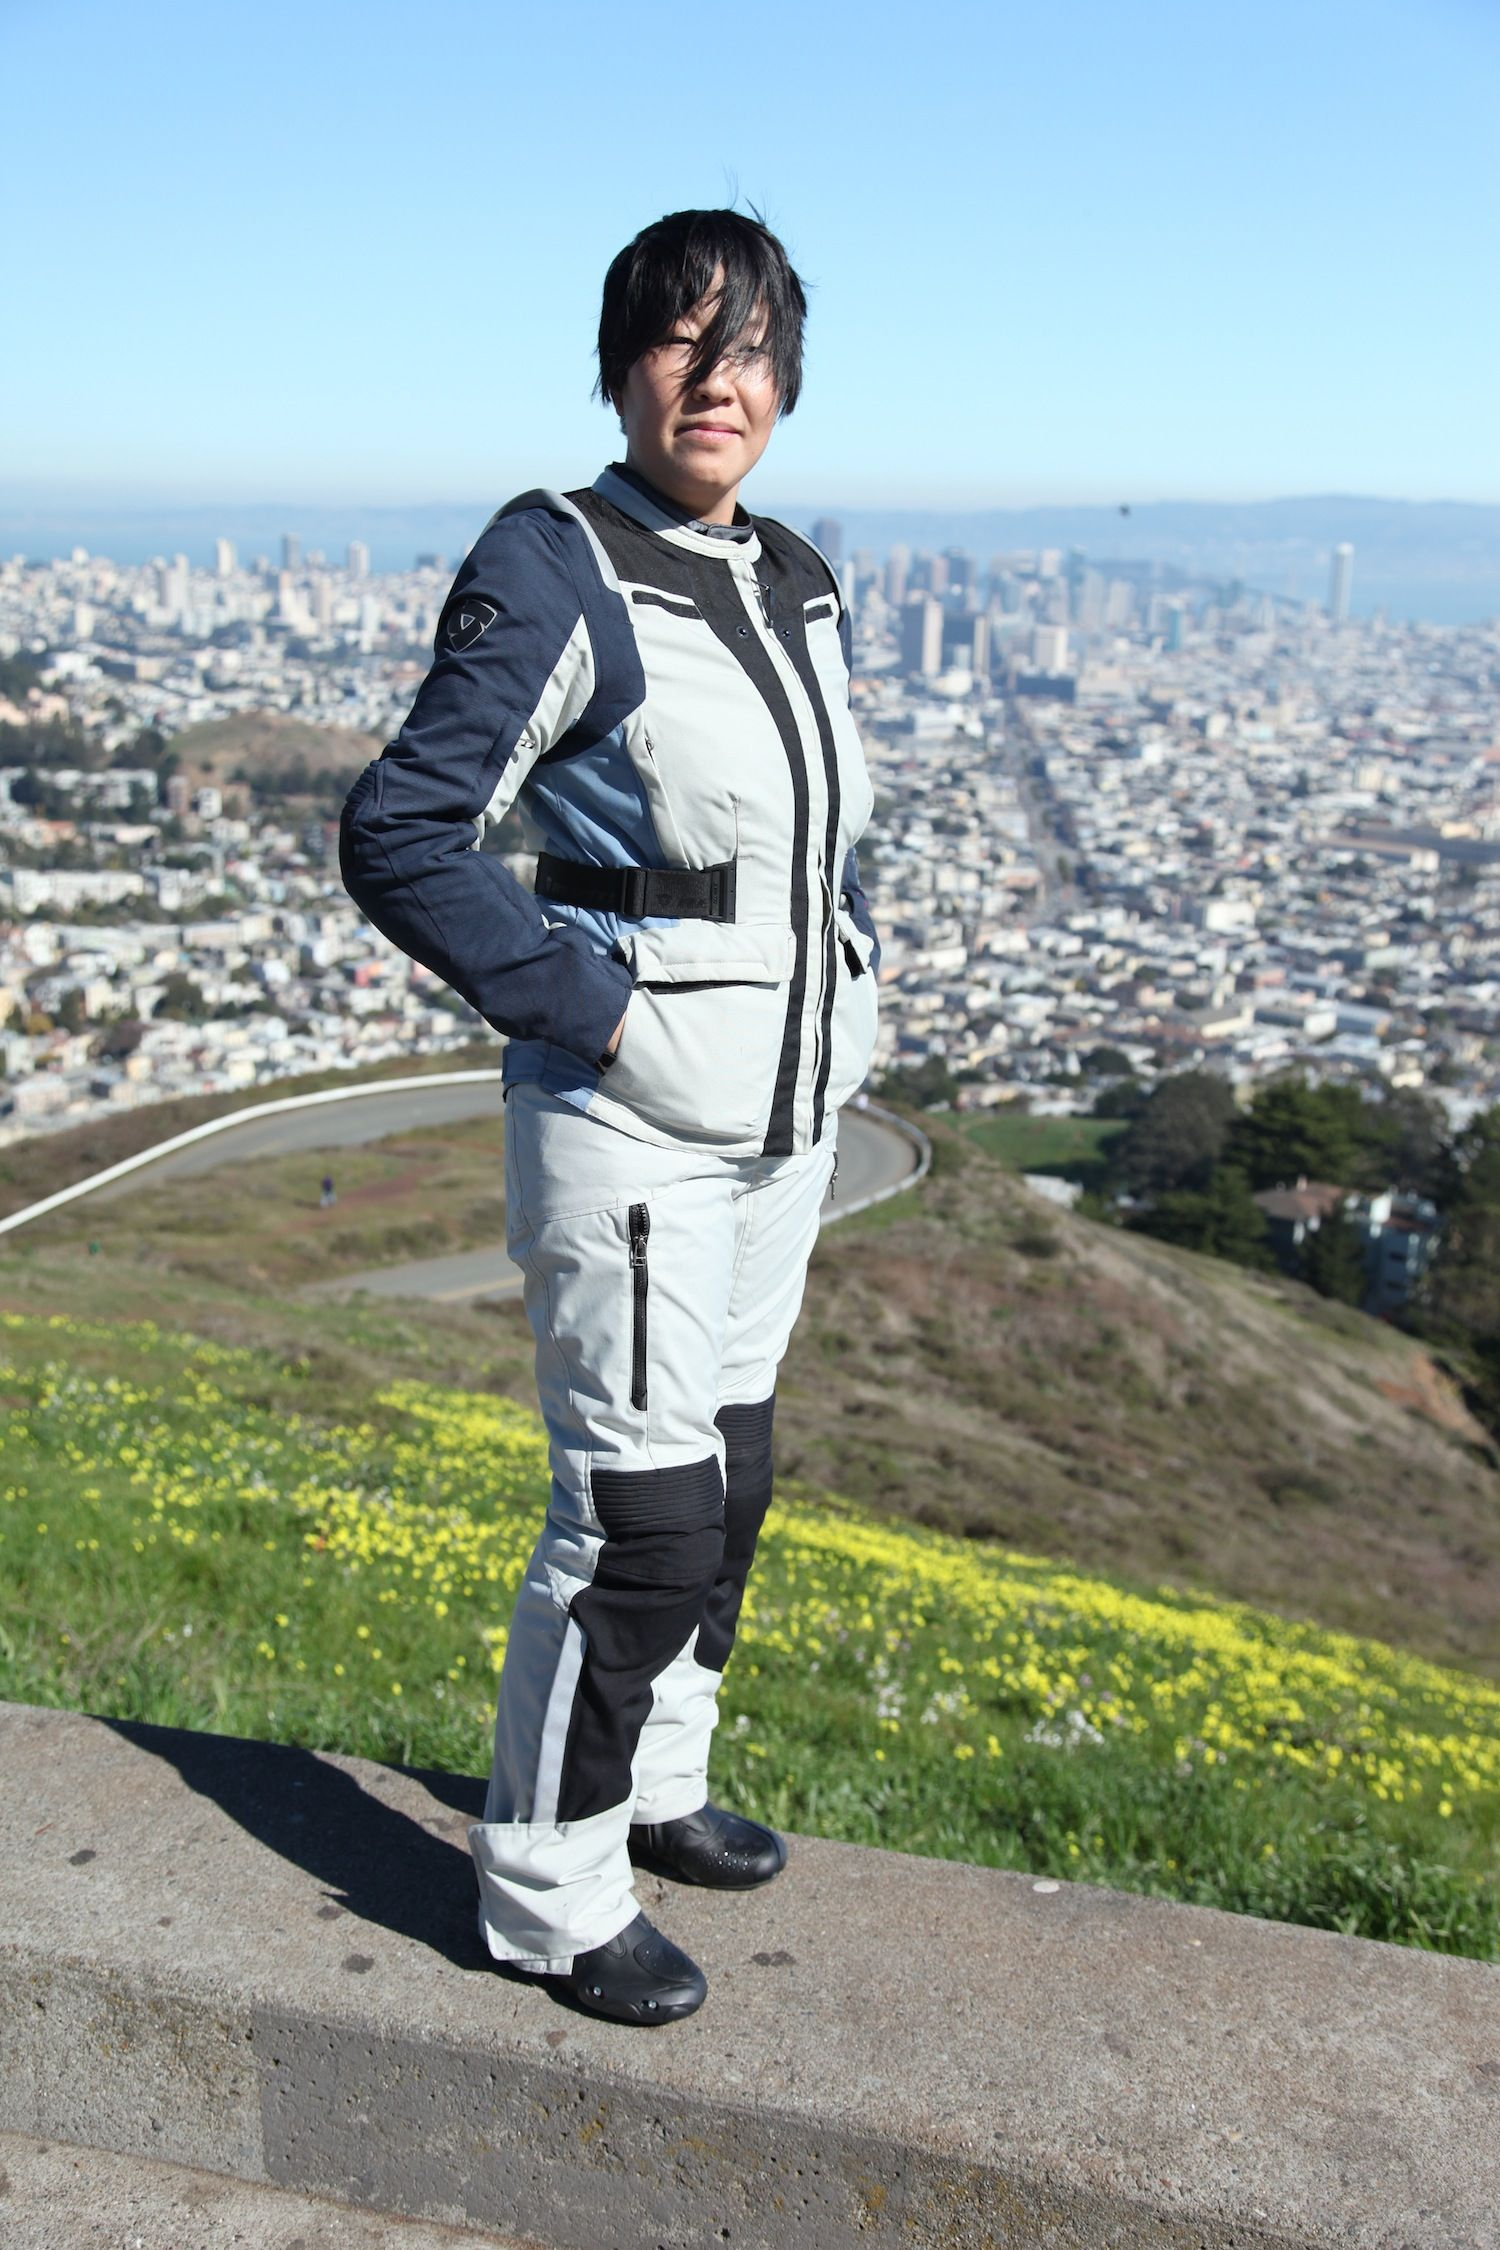 Motorcycle gloves san francisco - Find This Pin And More On Women S Motorcycle Gear Offered In Plus Sizes 14